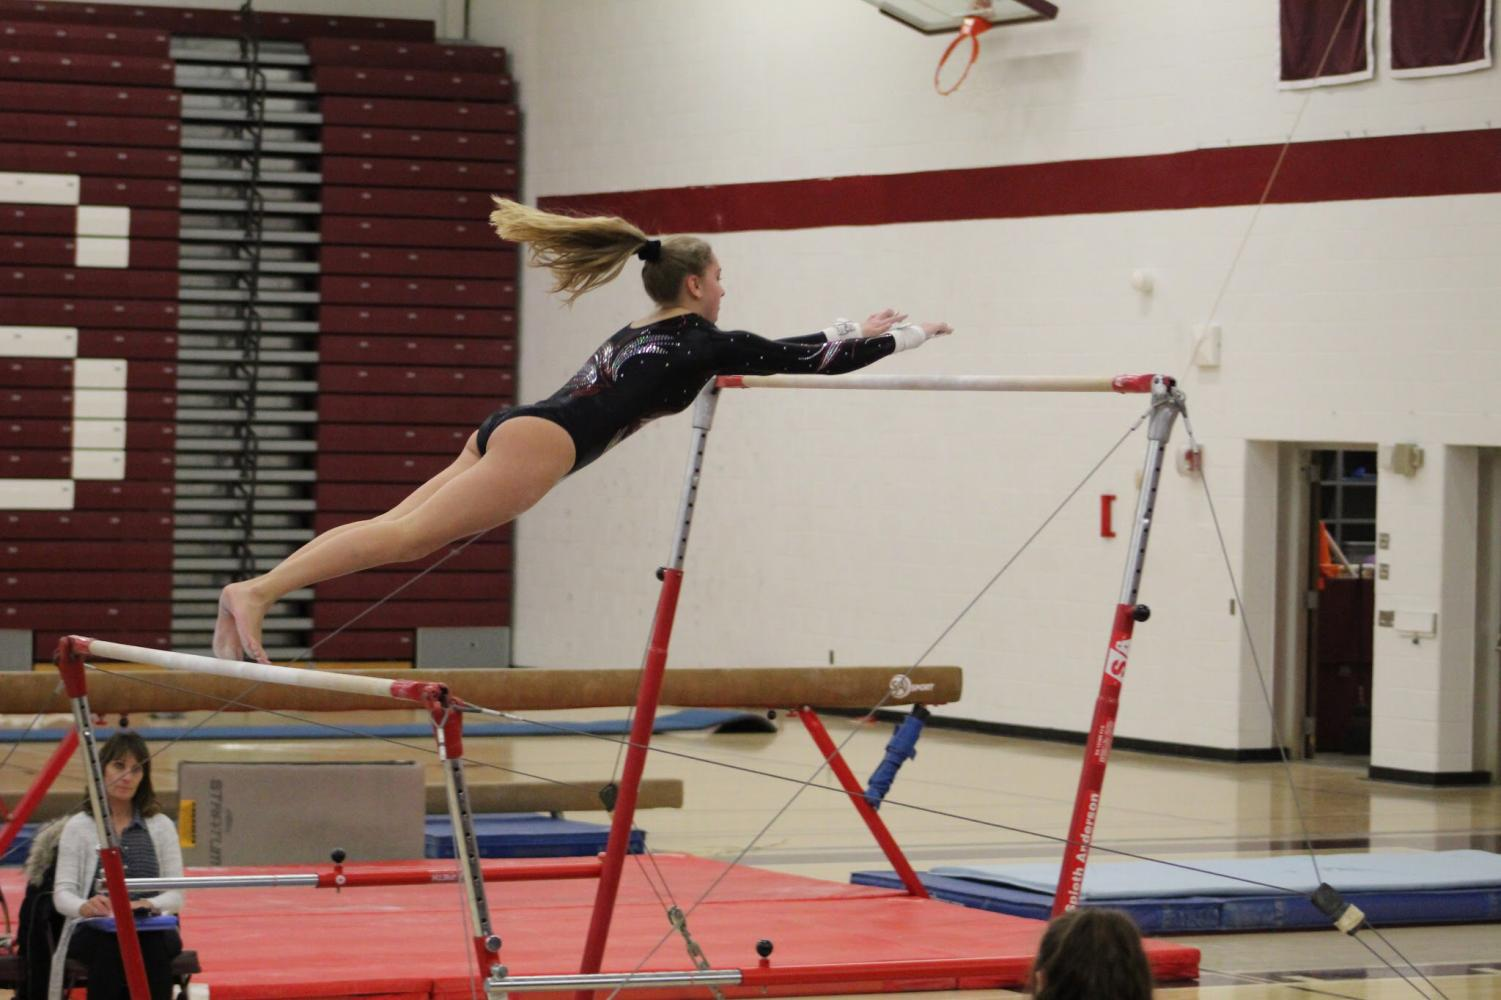 Let's go! The Gymnastics team participated in the league competition on Saturday Feb. 6 away. The team placed first throughout the day. They will next compete on Monday Feb.19.